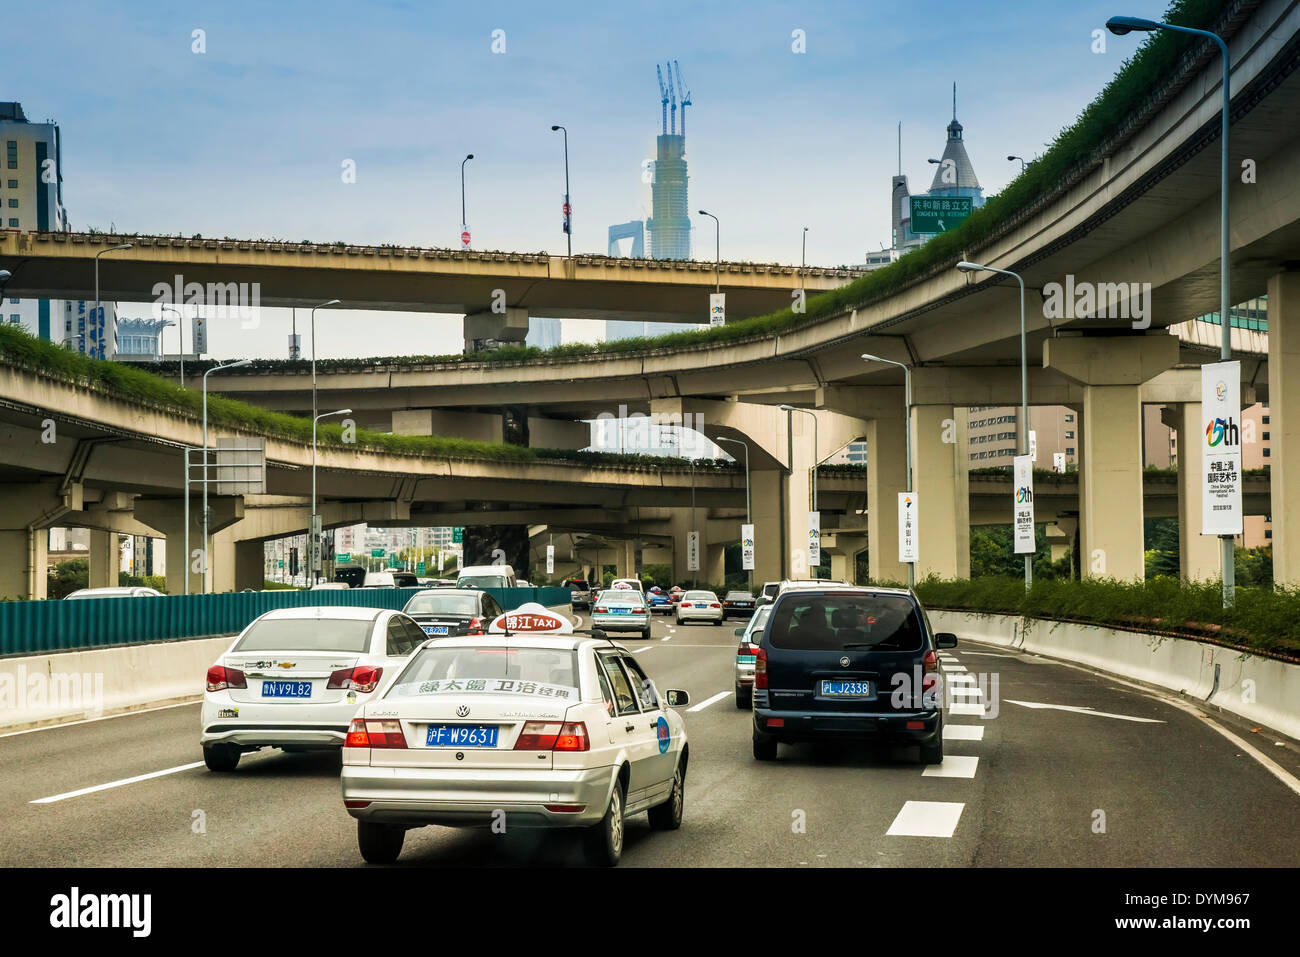 Traffic, elevated roads, Shanghai, China - Stock Image